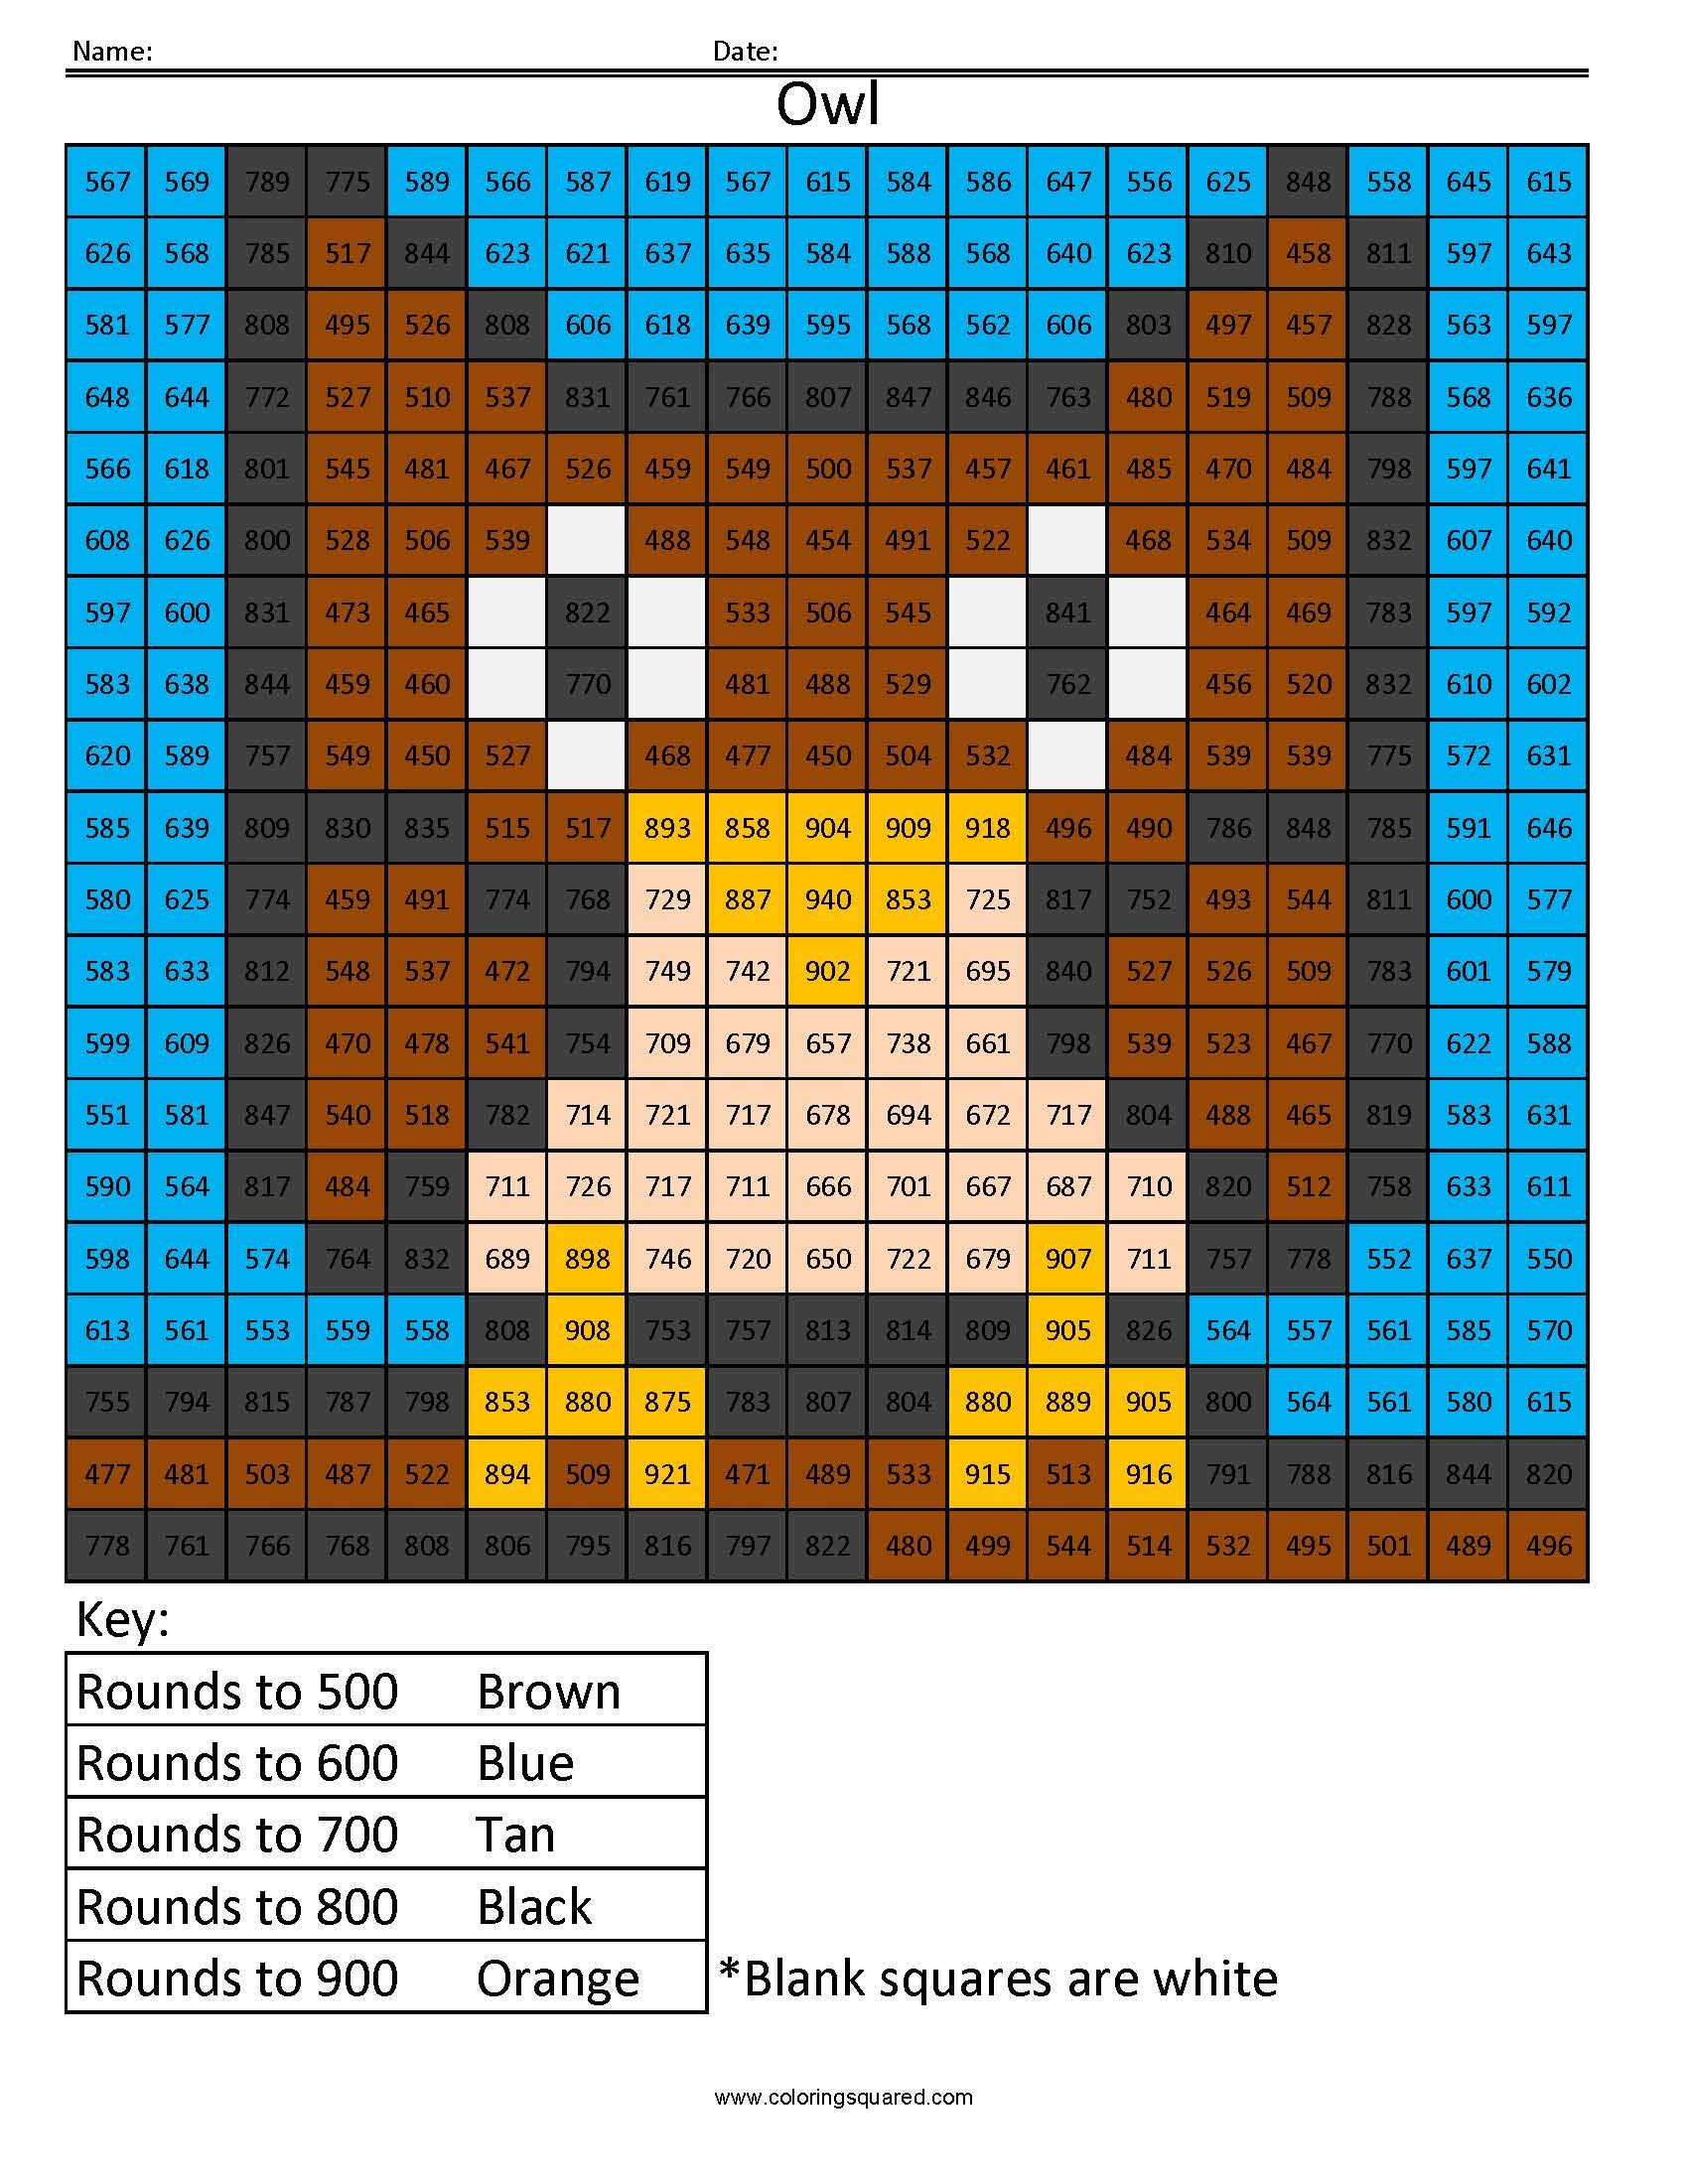 Owl Rounding Hundreds Place Coloring Squared Kids Math Worksheets Maths Colouring Sheets Free Math [ 2200 x 1700 Pixel ]